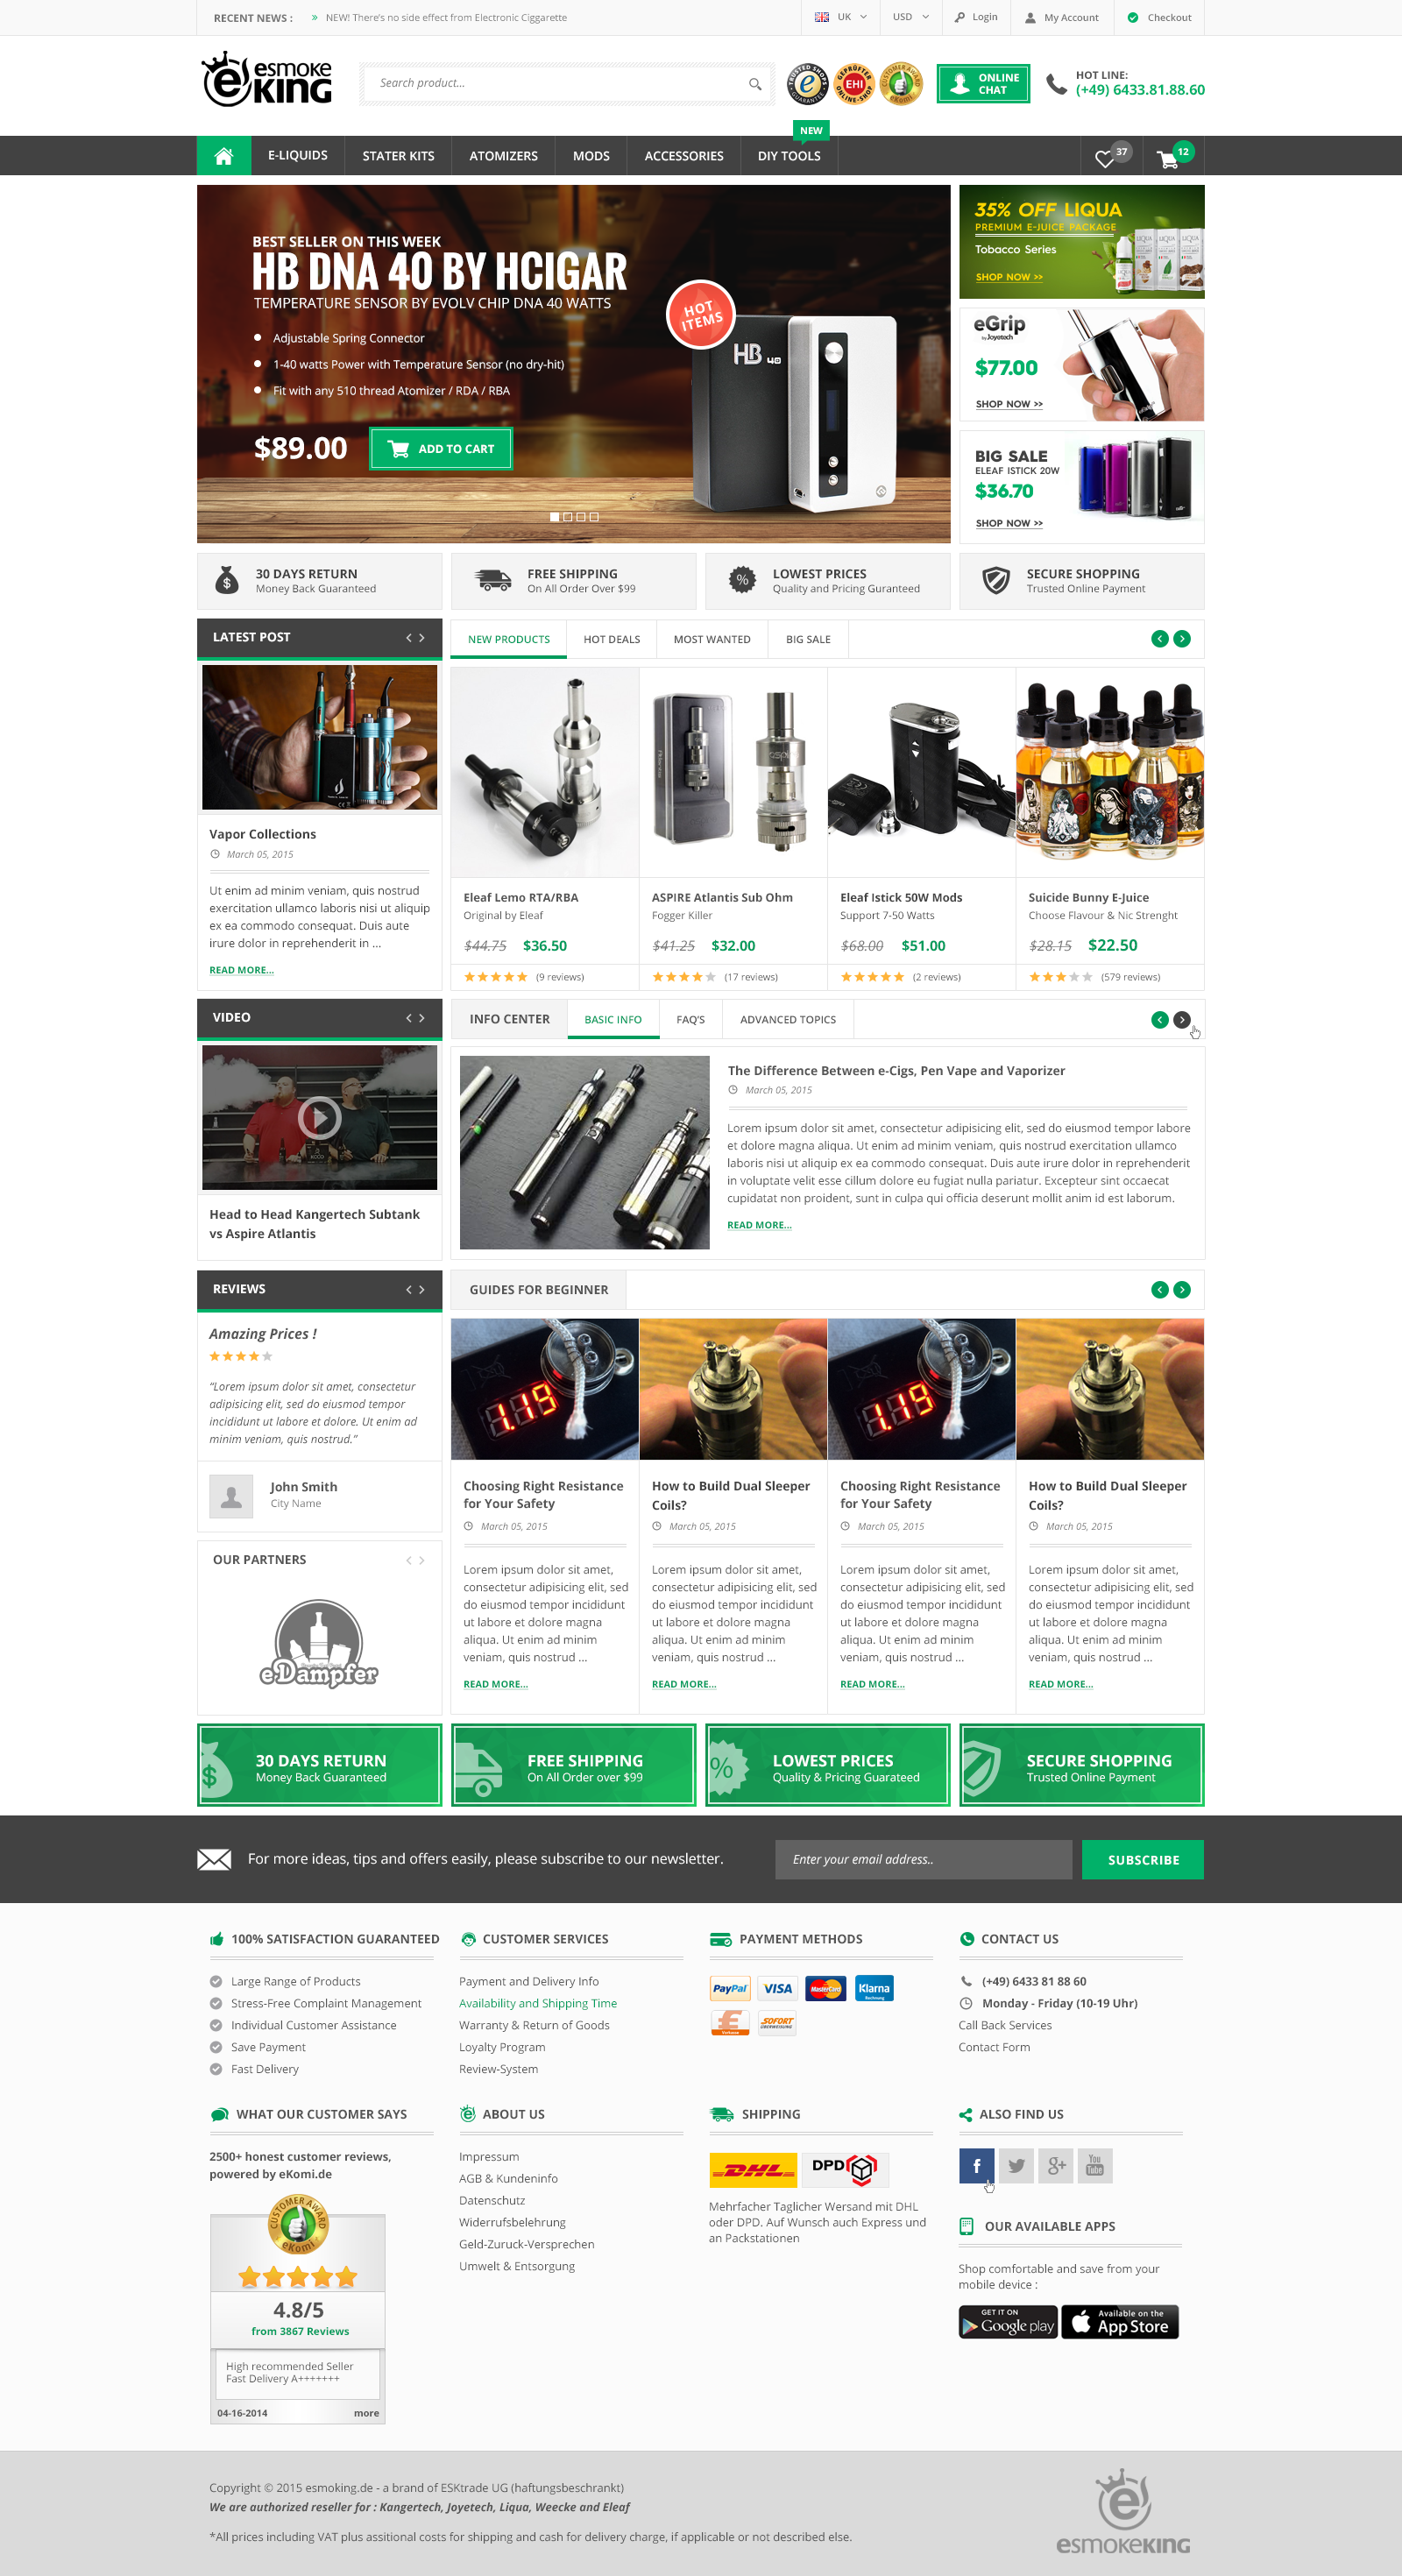 innovative redesign for webshop (2 pages only) - design only, no coding